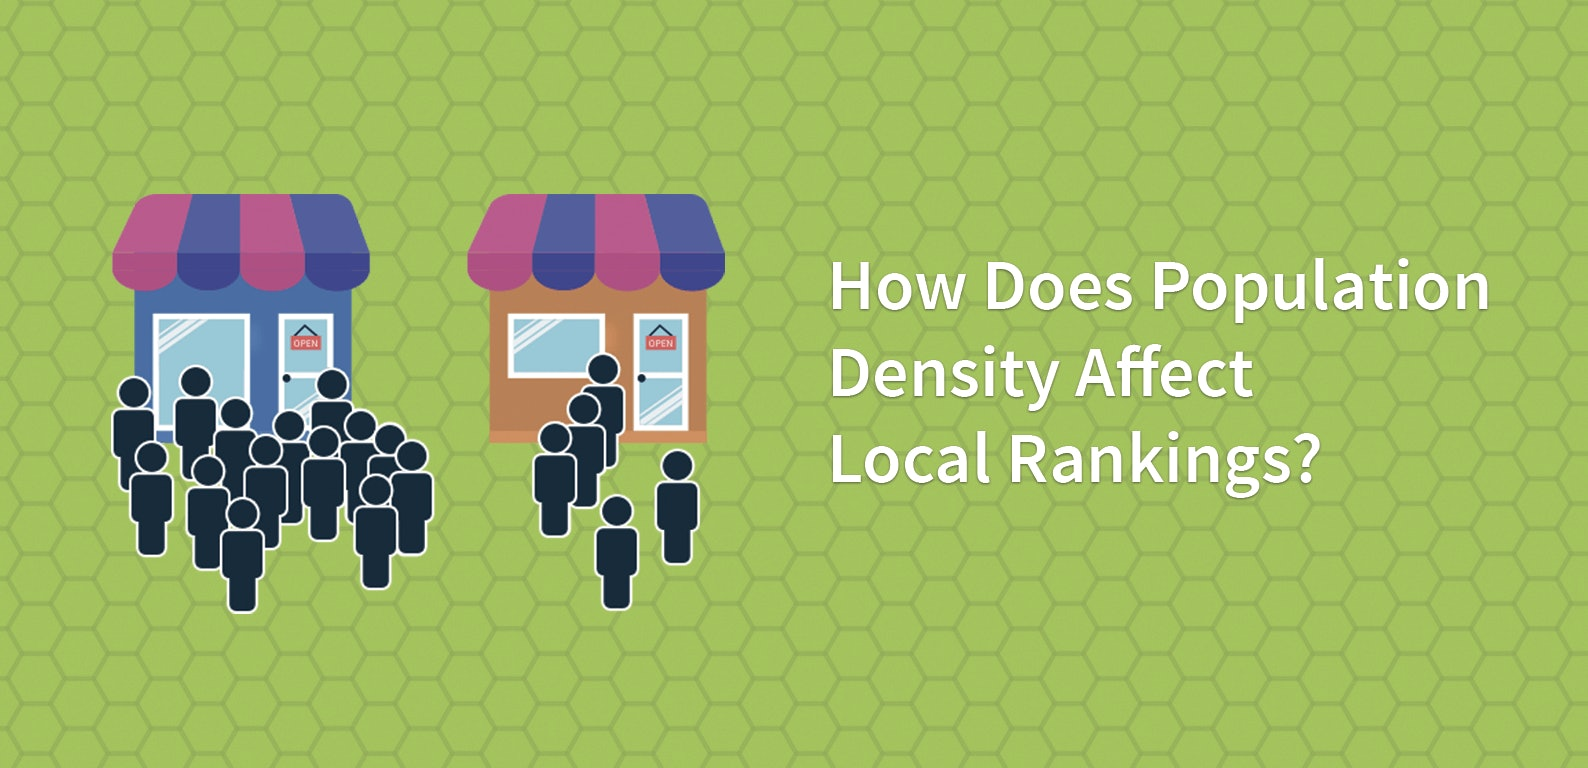 How Does Population Density Affect Local Rankings?